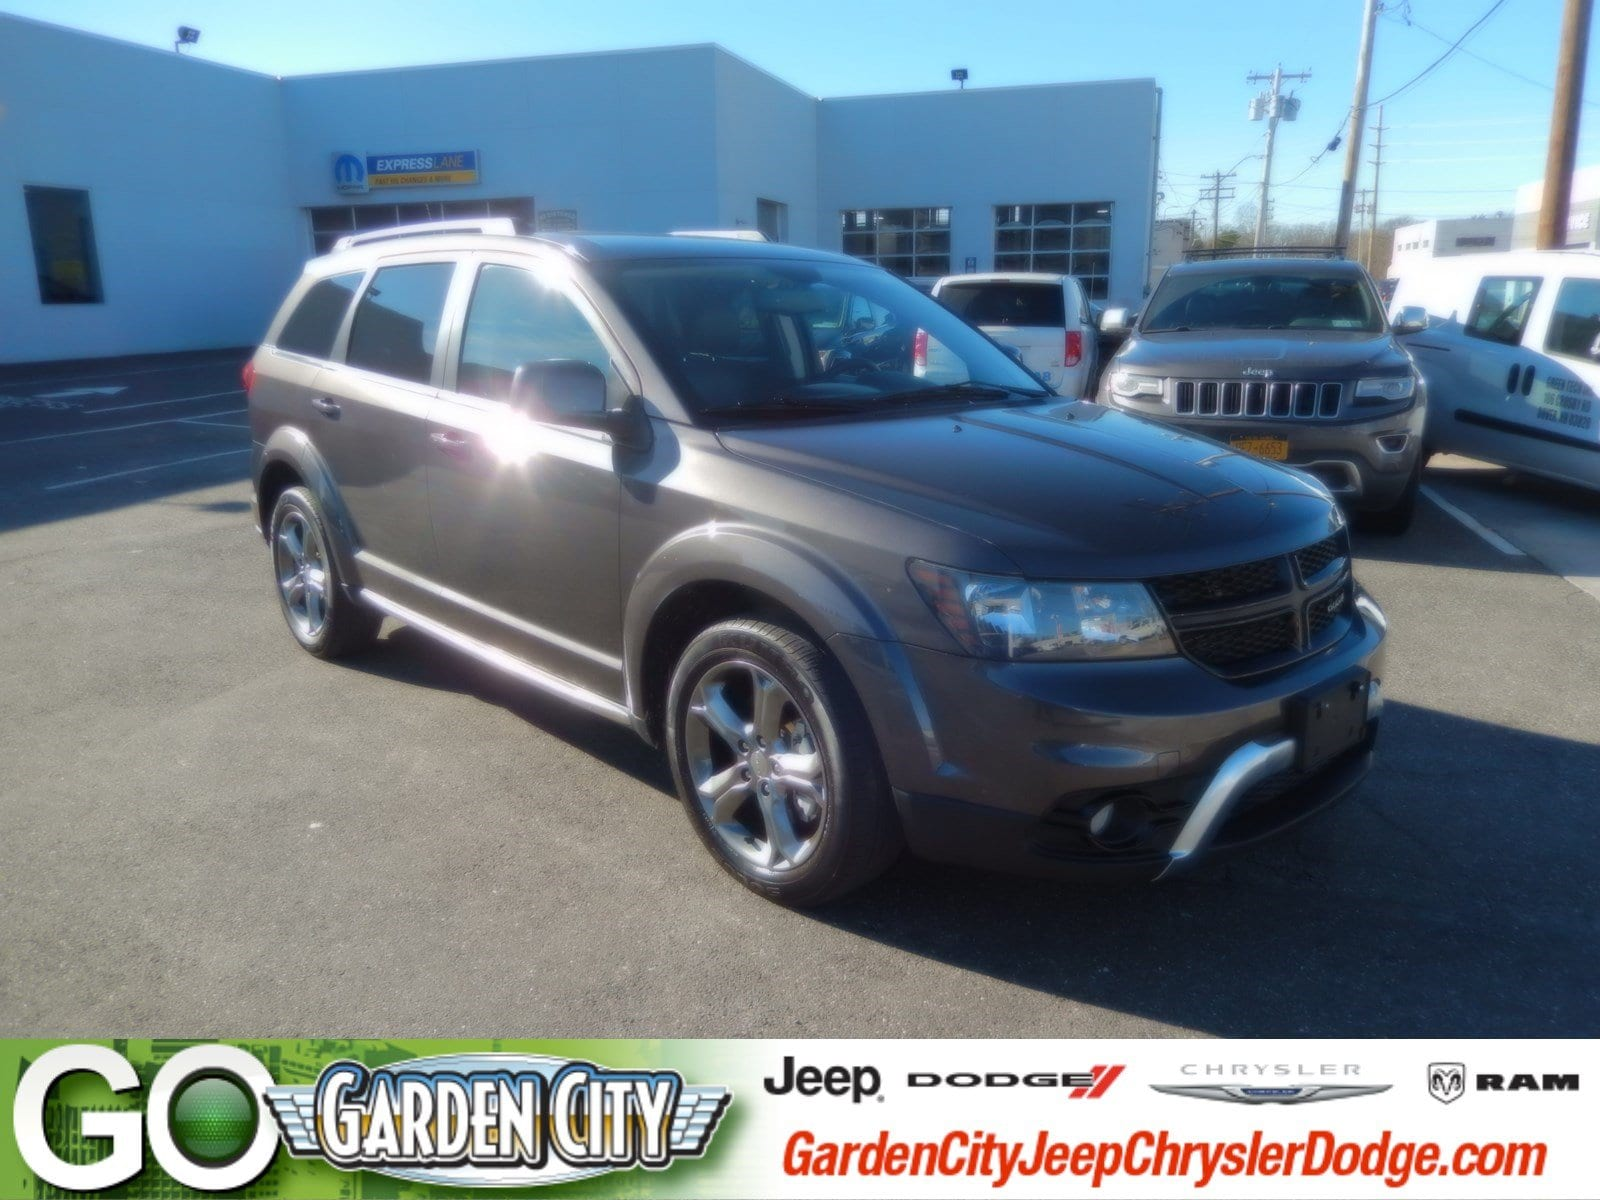 Certified Used 2017 Dodge Journey Crossroad Plus Crossroad Plus FWD For Sale | Hempstead, Long Island, NY